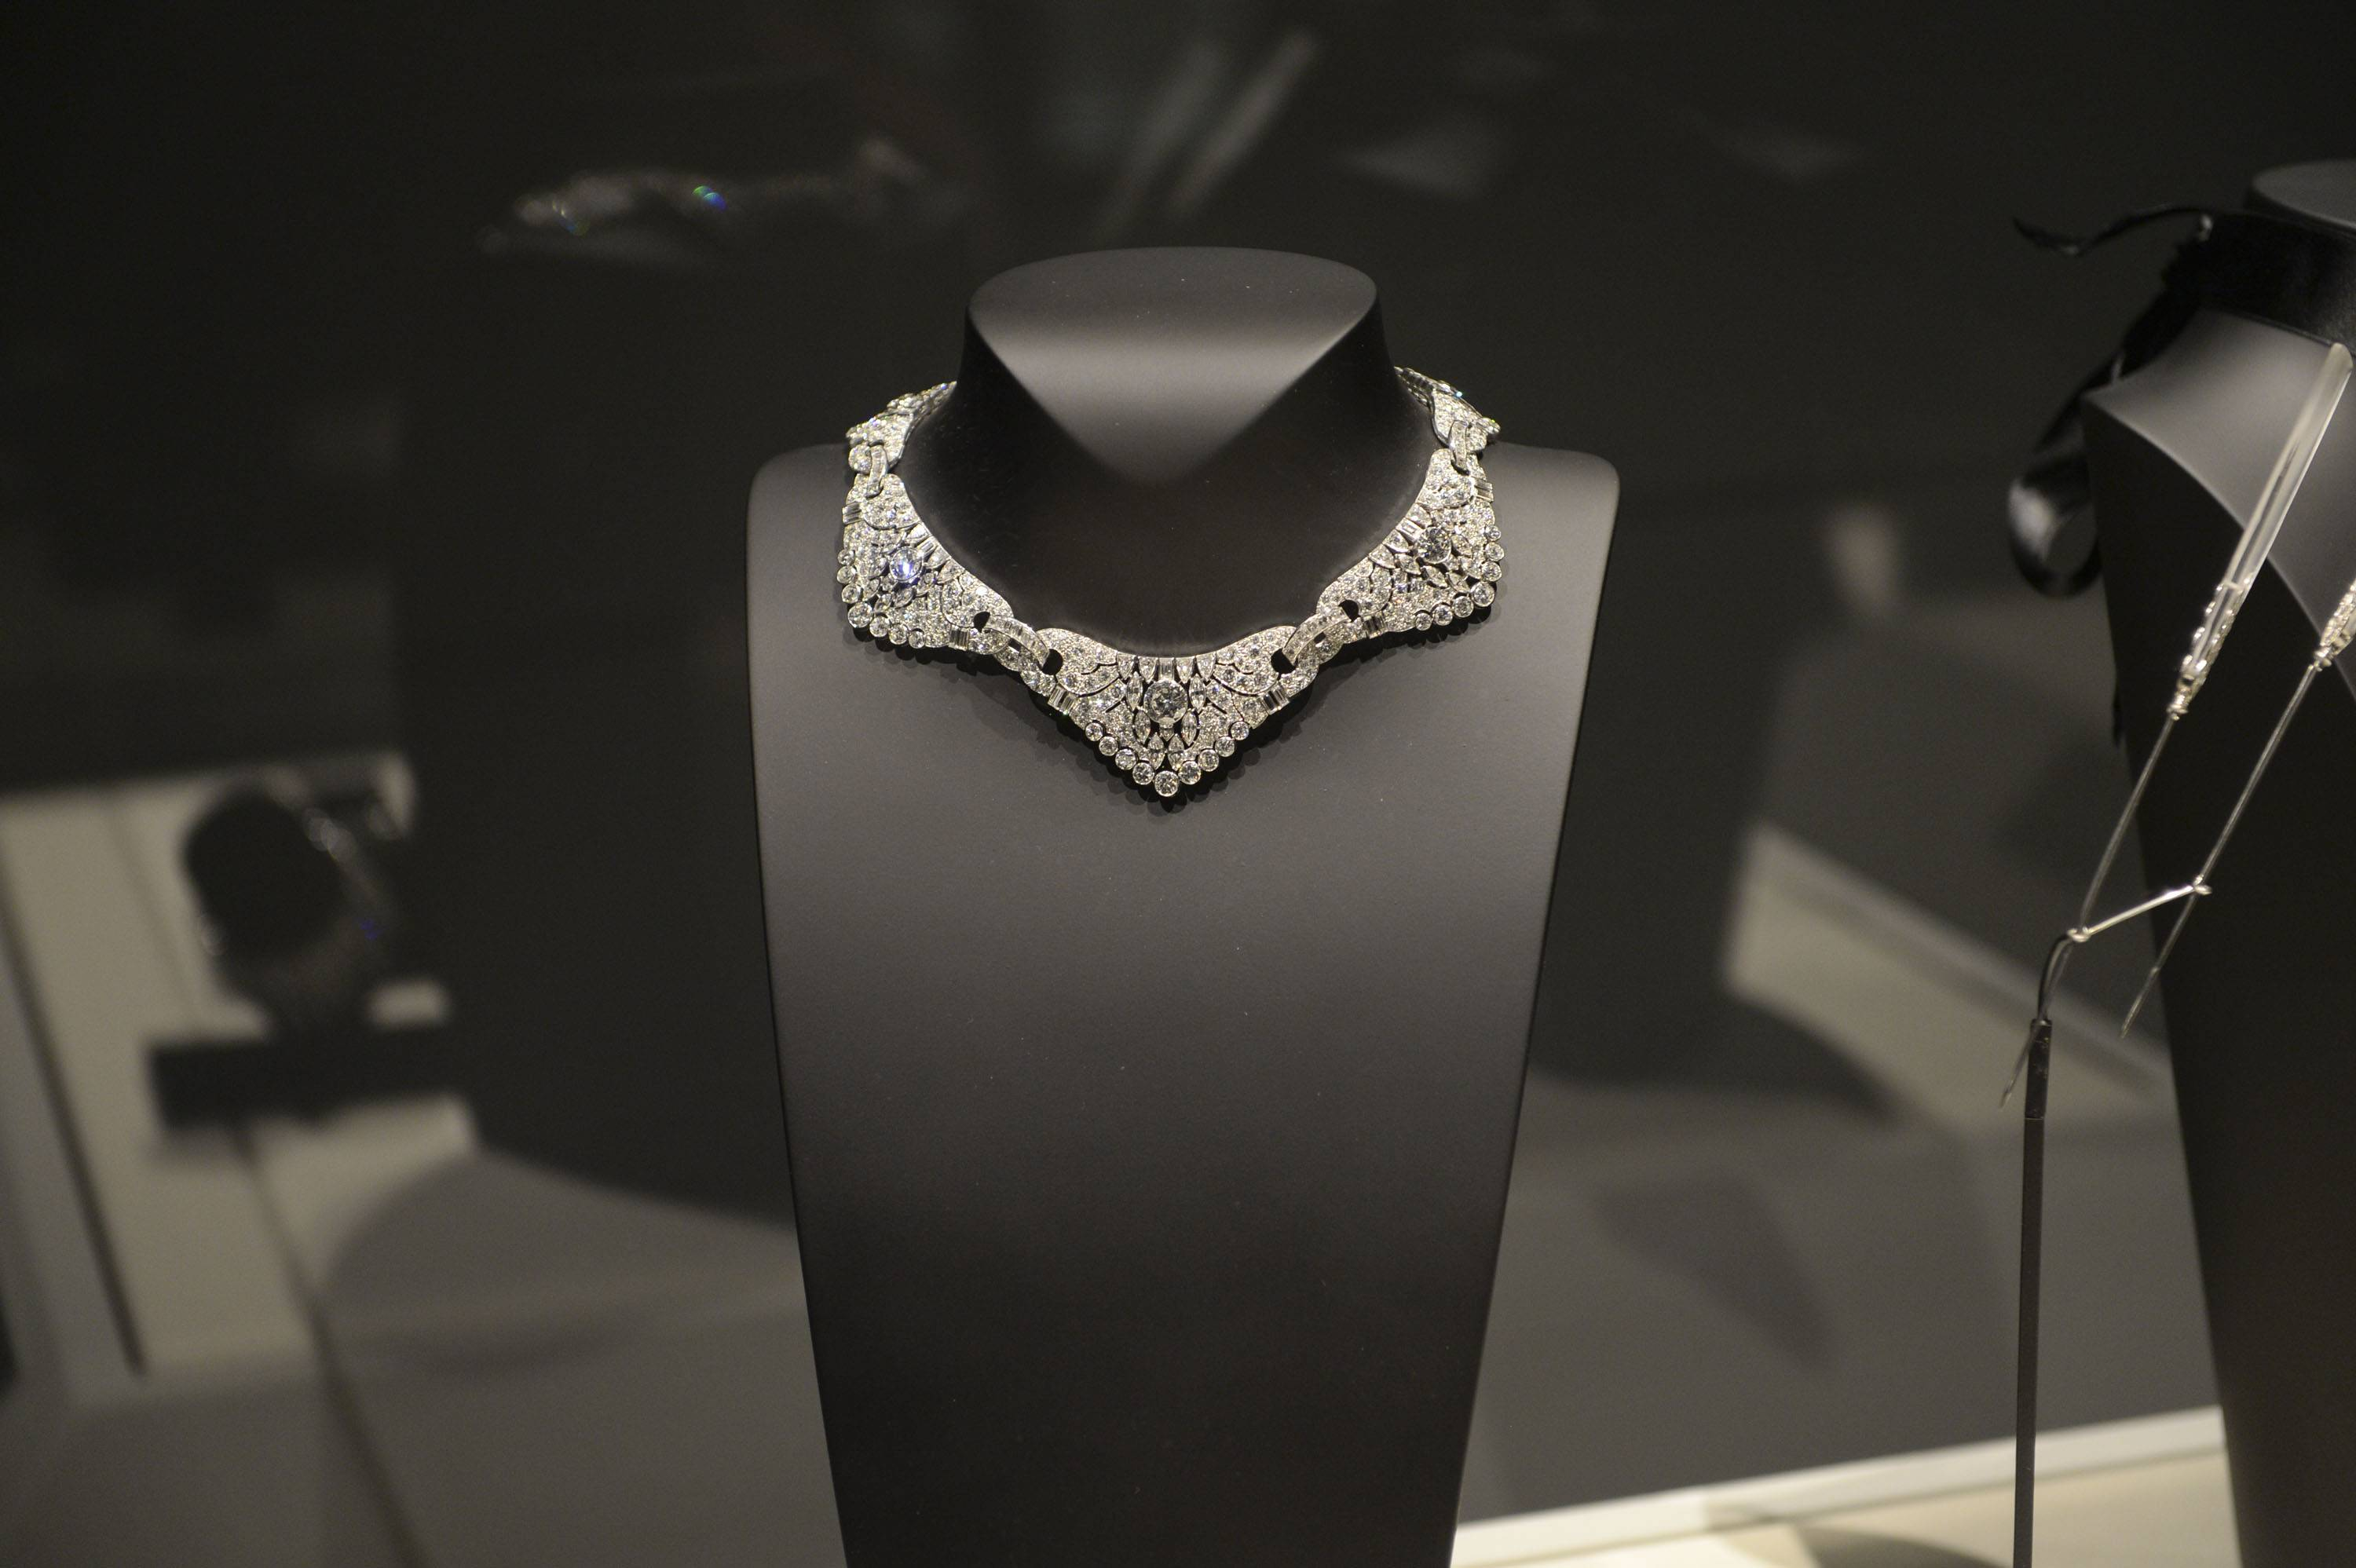 A Quest for Beauty: The Art Of Van Cleef & Arpels